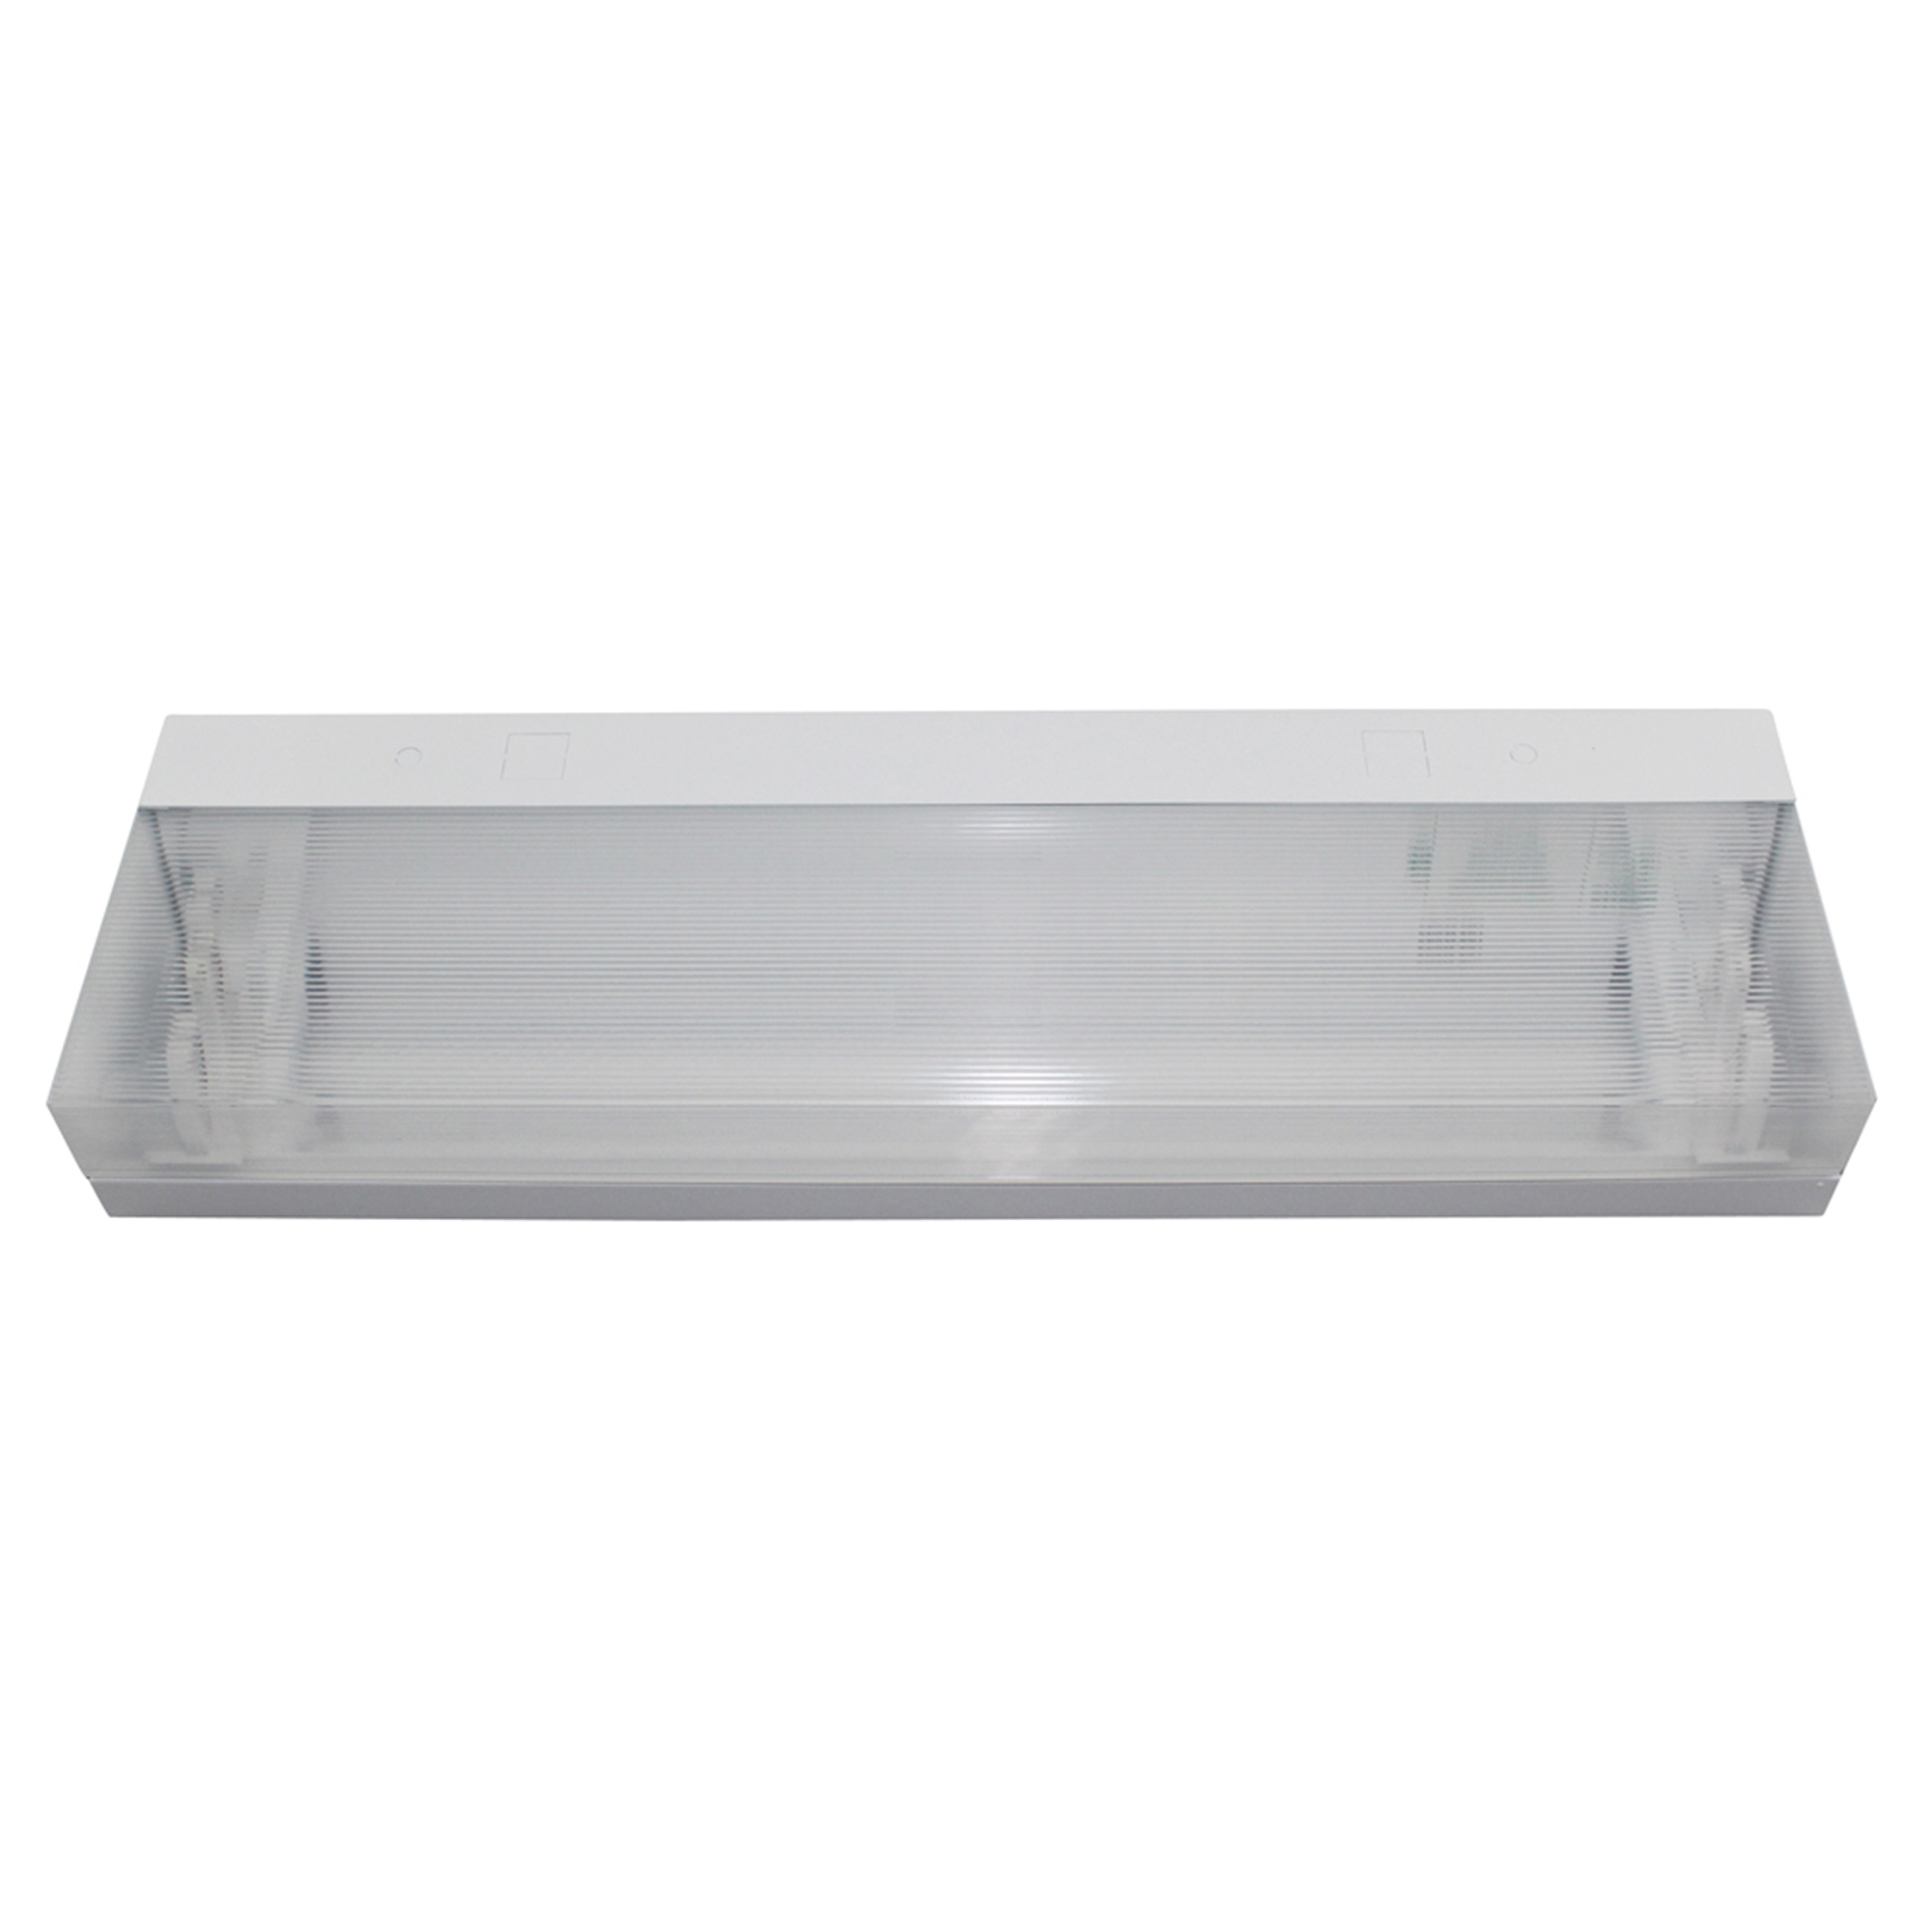 Wall Mounted T8 Fixture : Wall Mount Fluorescent Light Fixtures - Kichler 10688pn Freeport Collection 2 Light Wall Mount ...